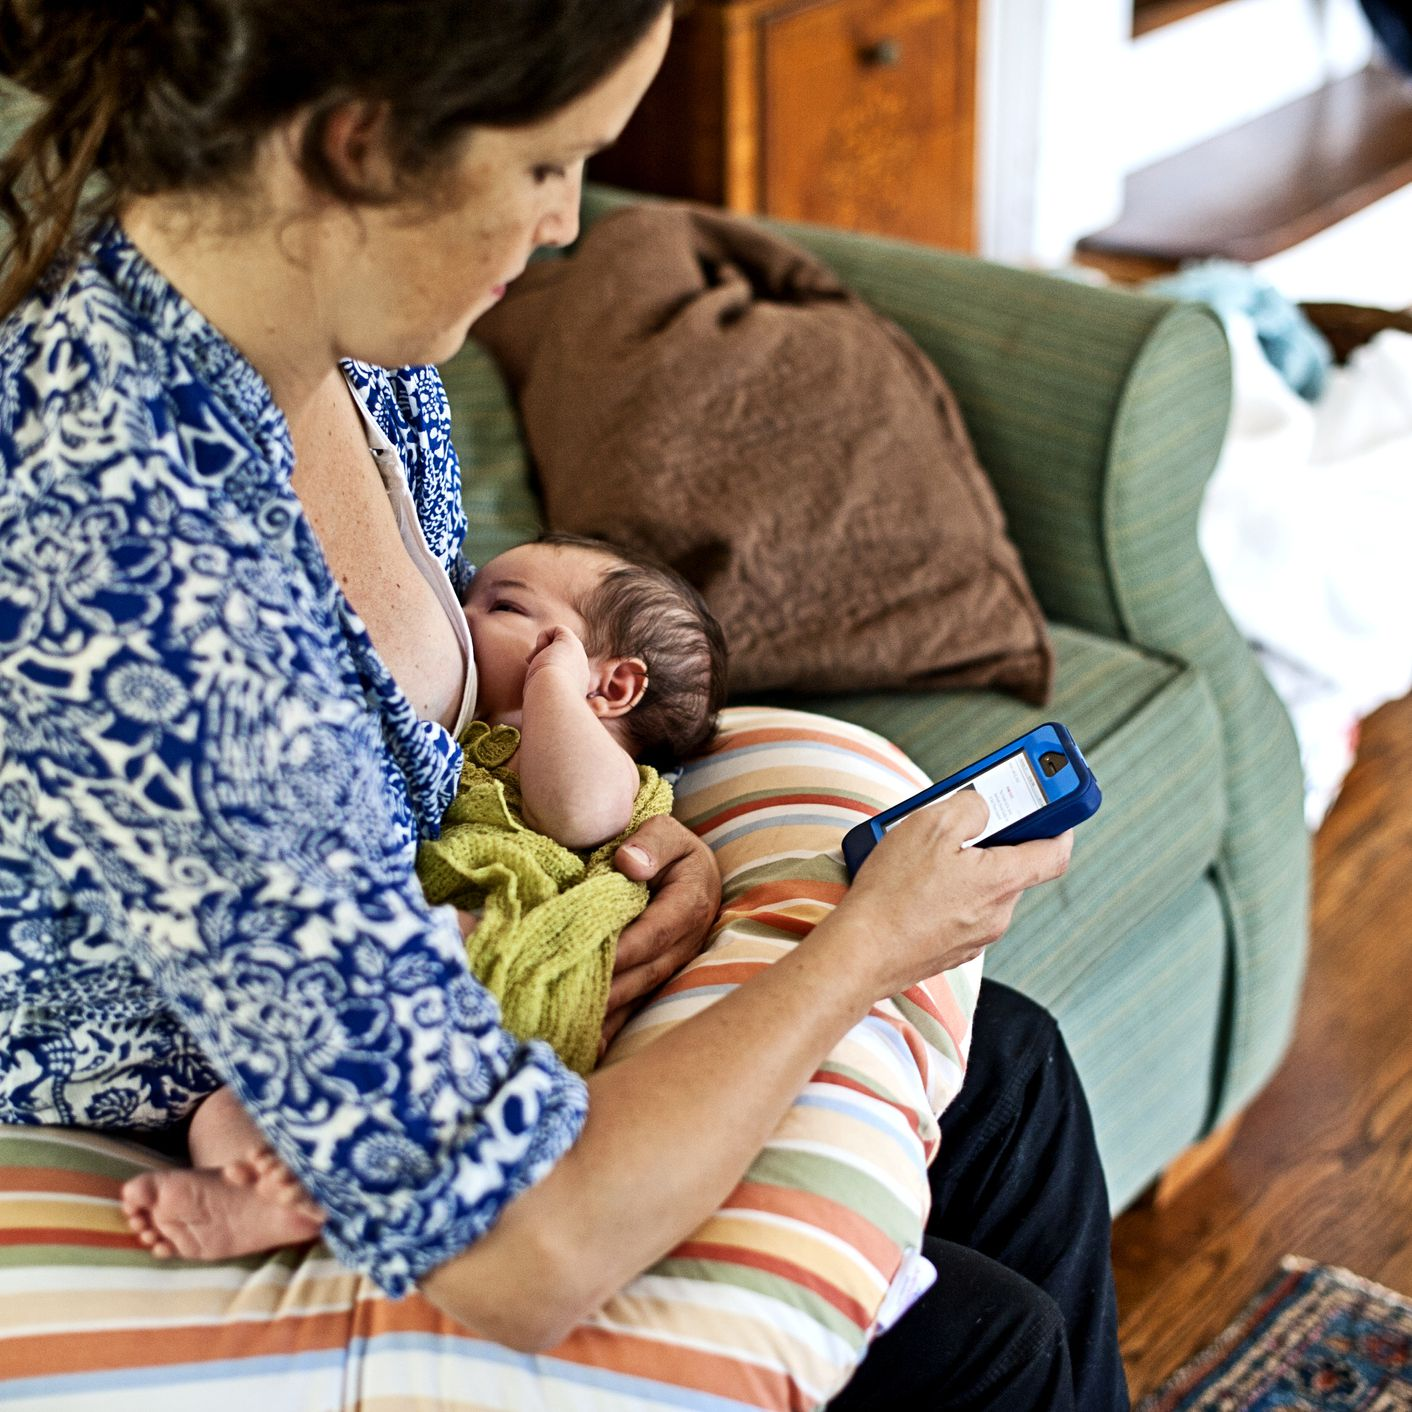 Breastfeeding Tracker App Reviews